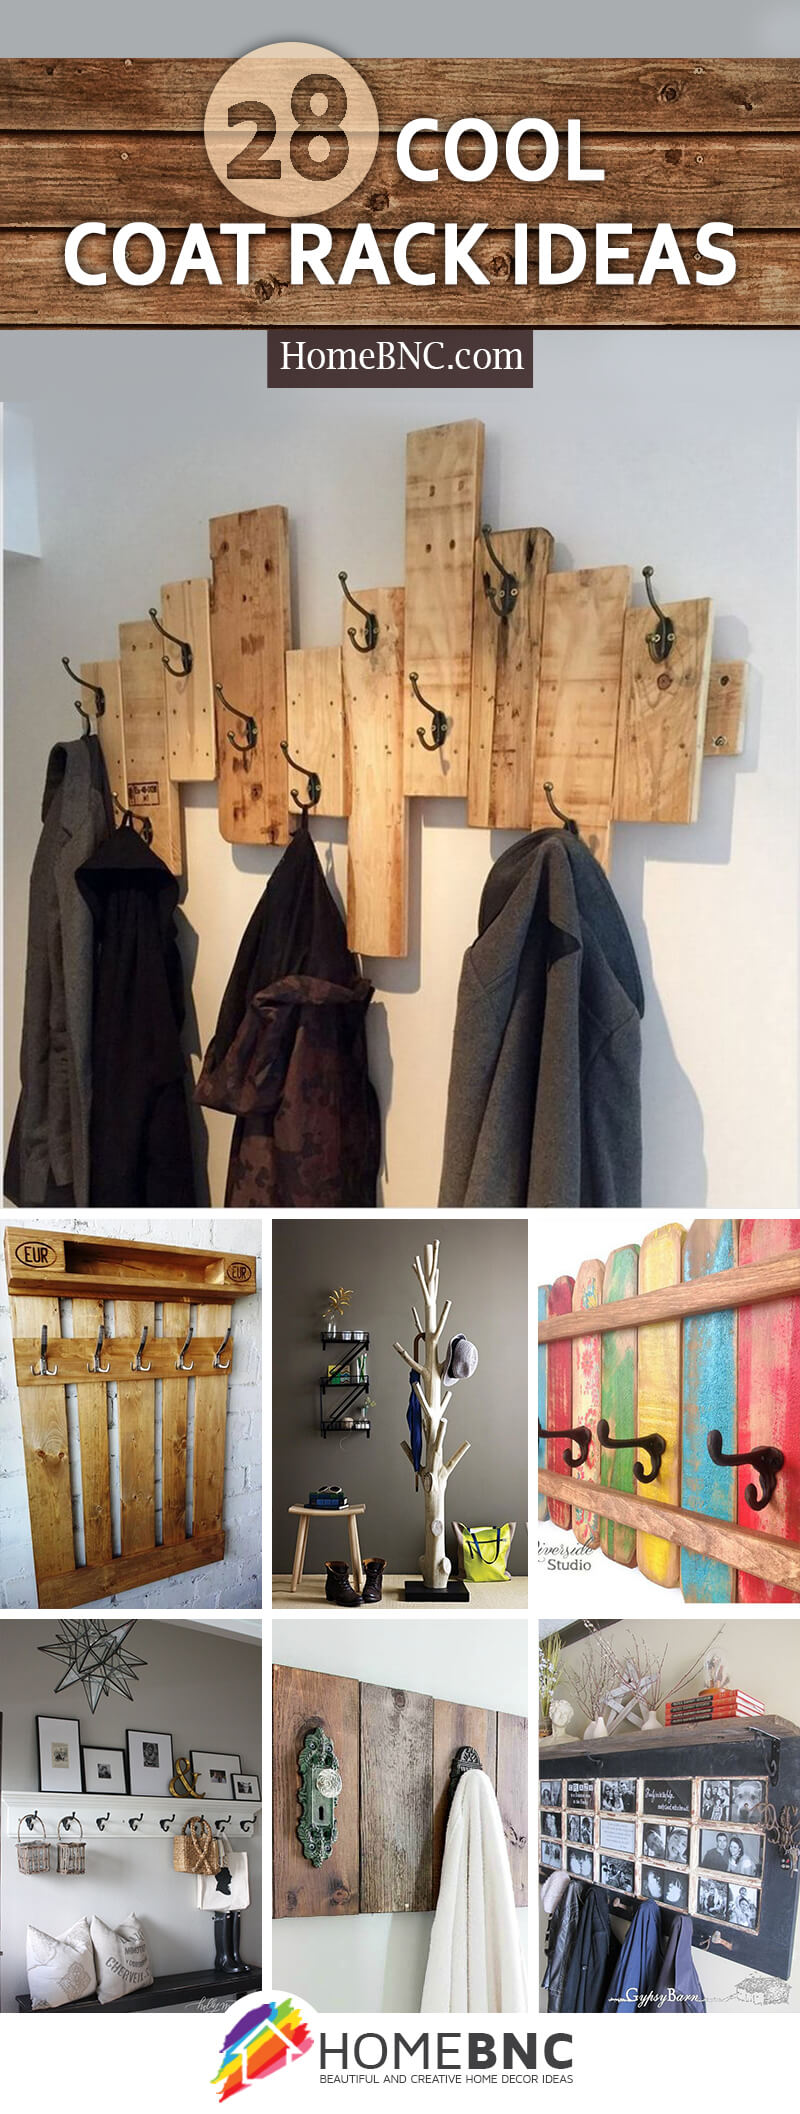 Coat Rack Decor Ideas